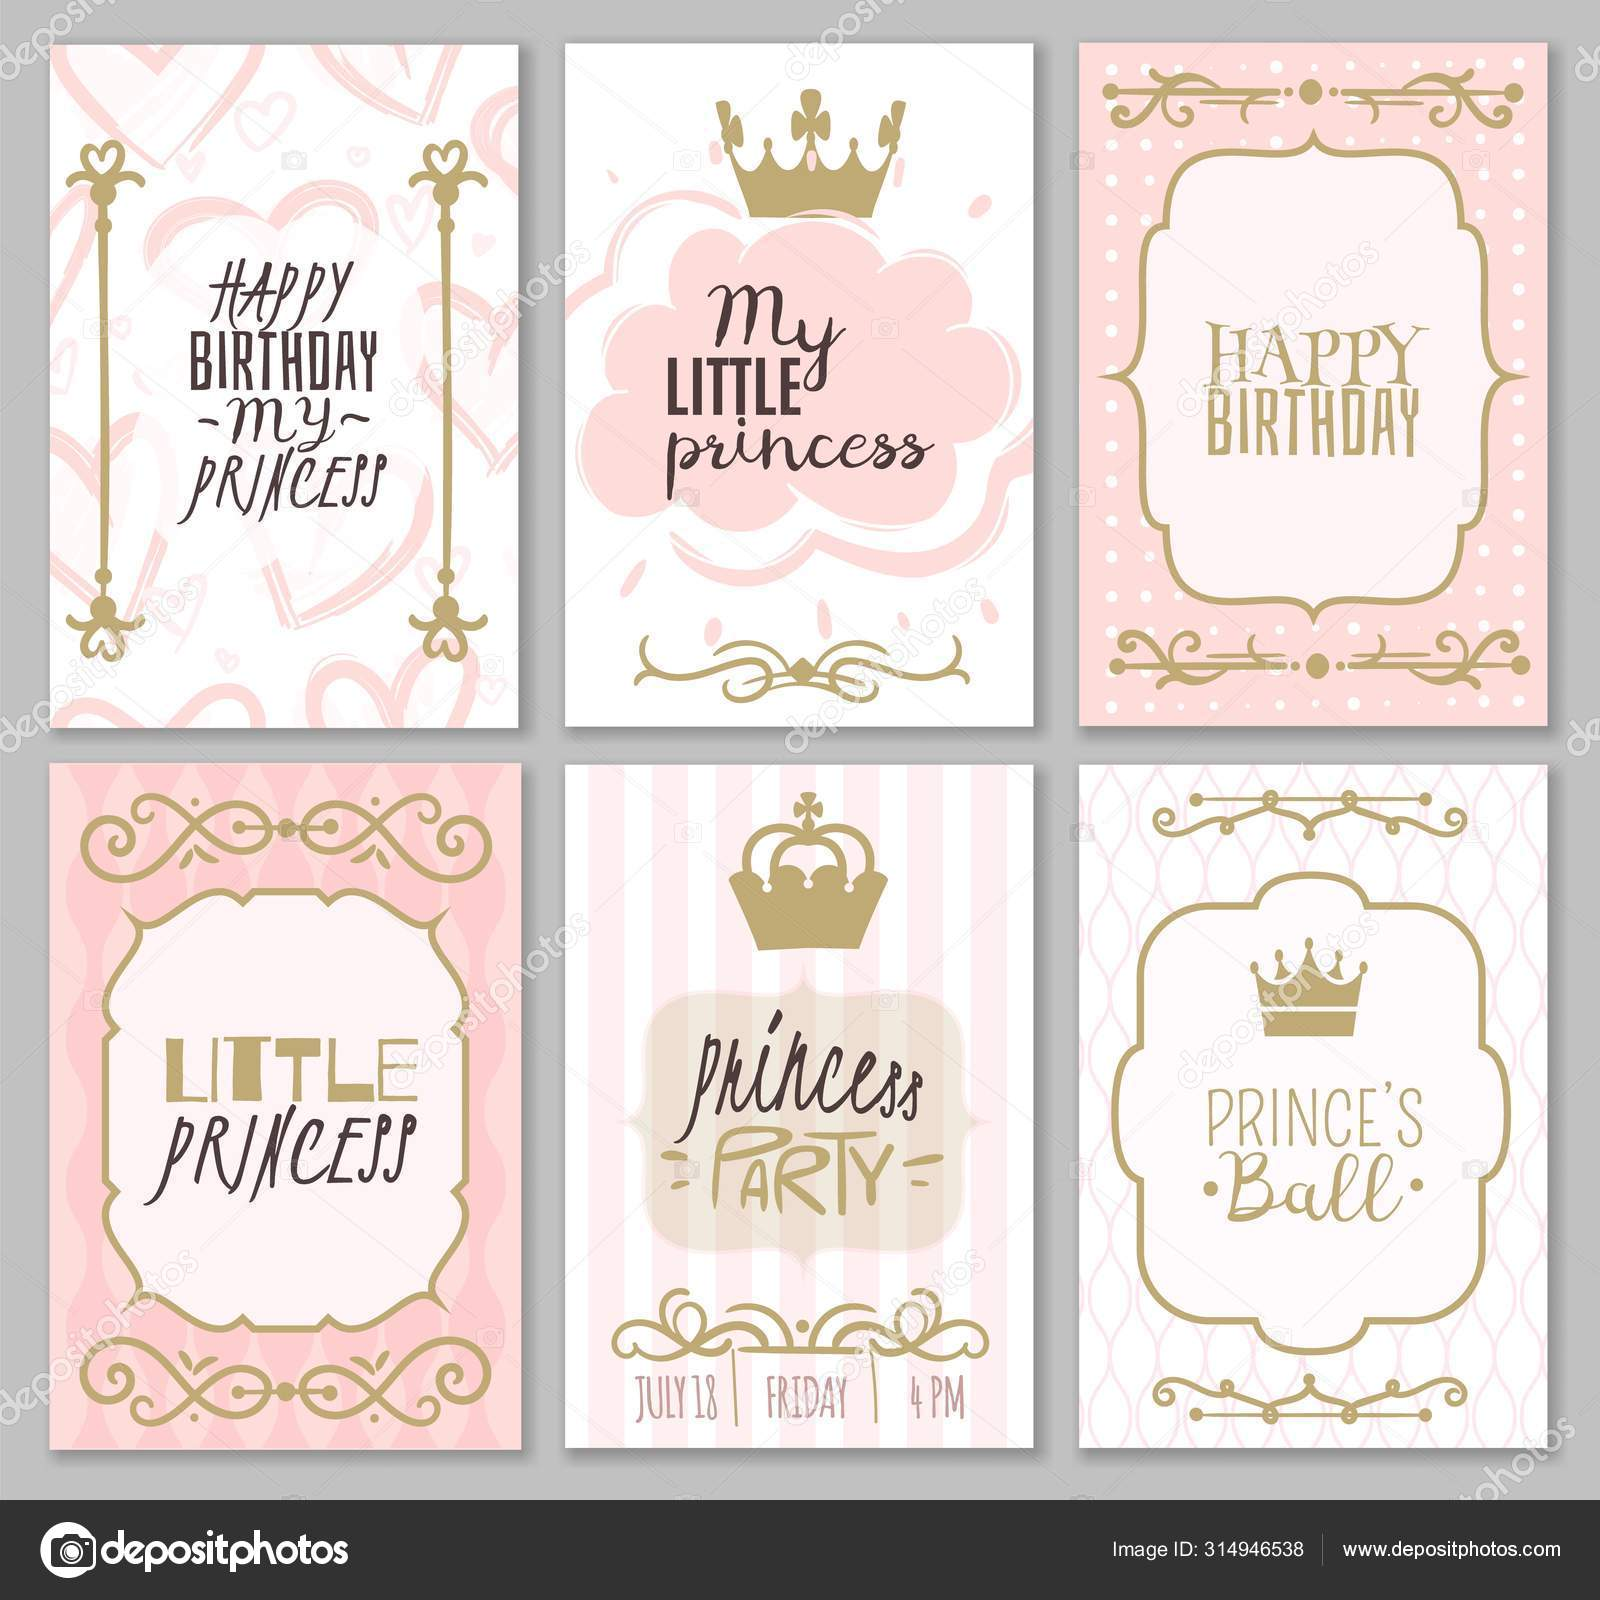 princess borders cute girl party invitation shower or sweet frames for elegant decor of card vector templates vector image by c yummybuum vector stock 314946538